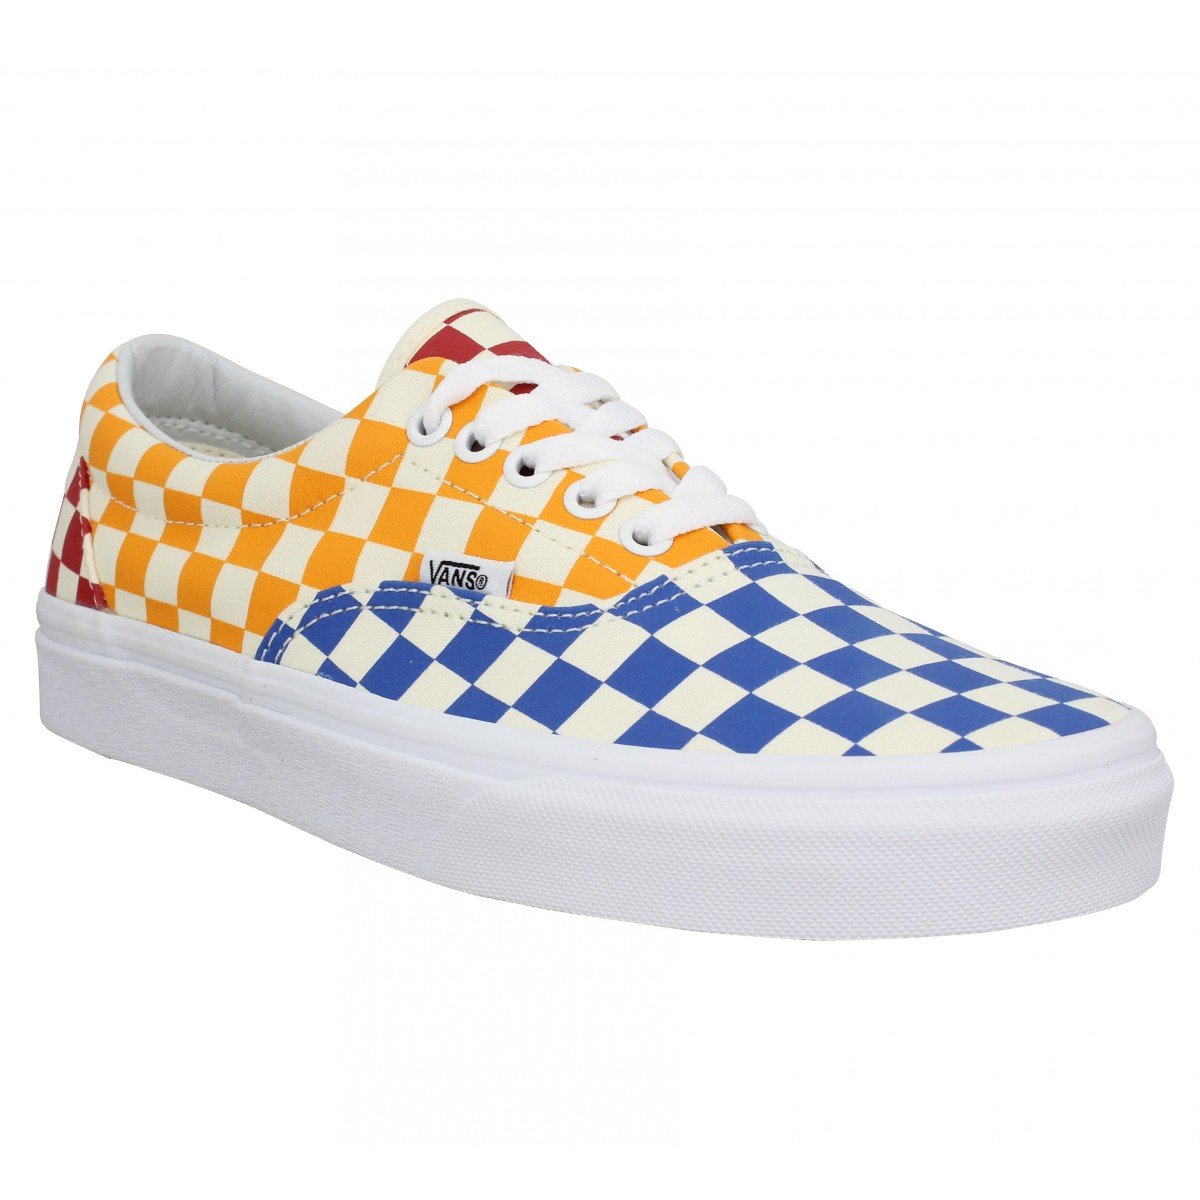 Baskets VANS Era Checkerboard toile Homme Multi